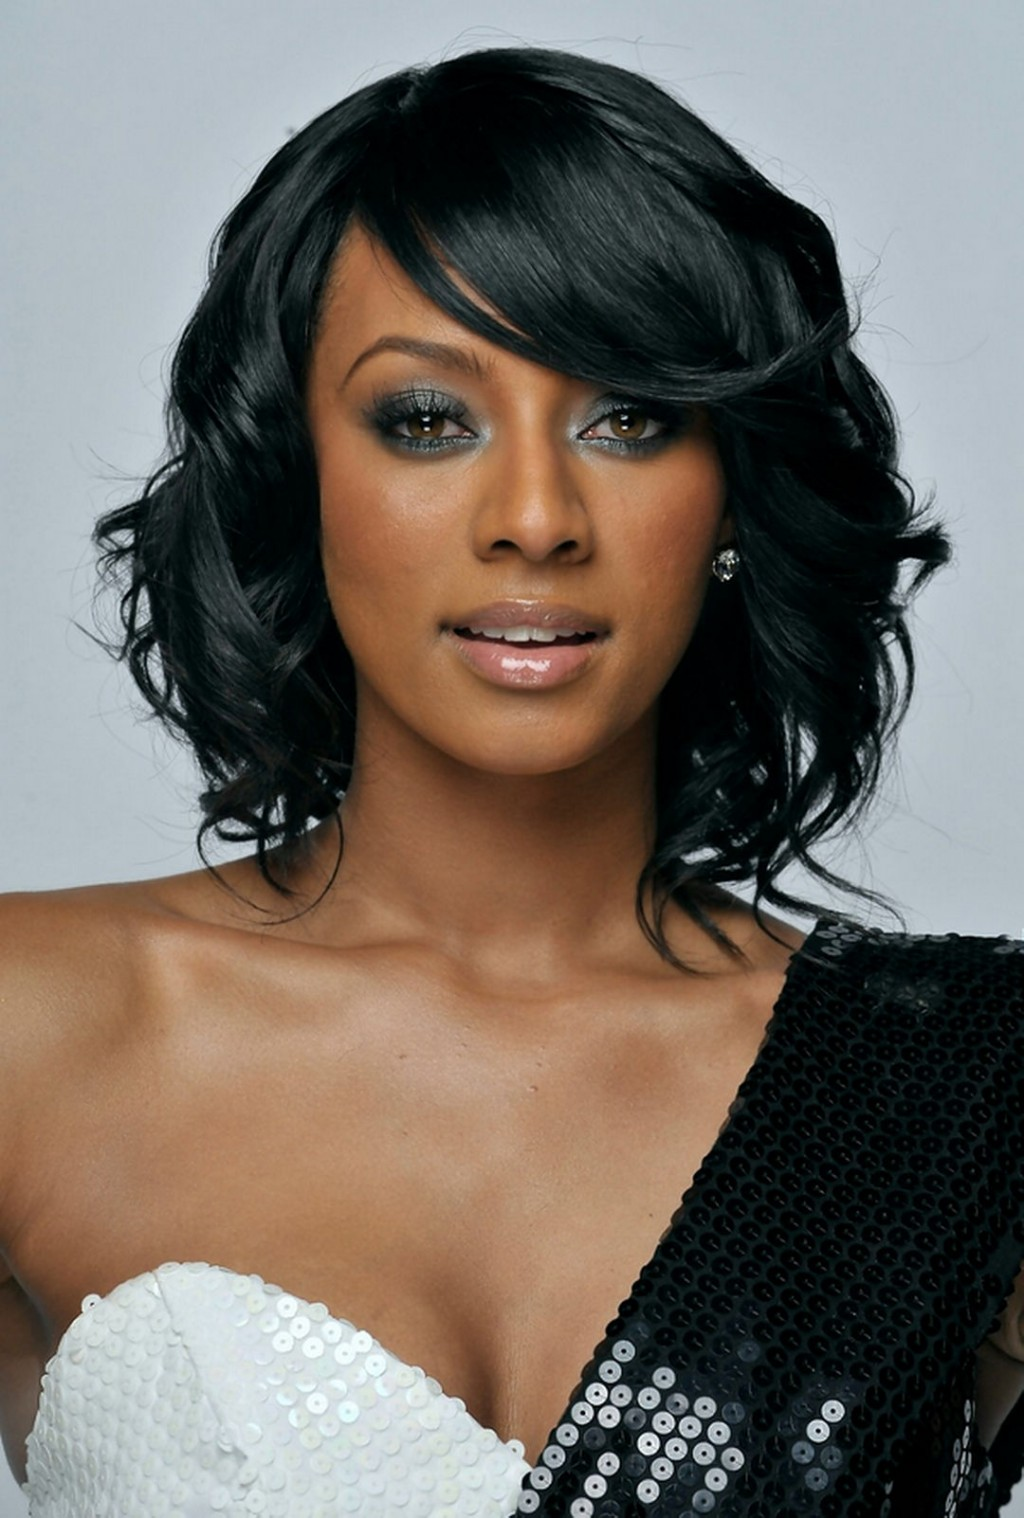 Hairstyle photos bob layered hairstyles for women african american